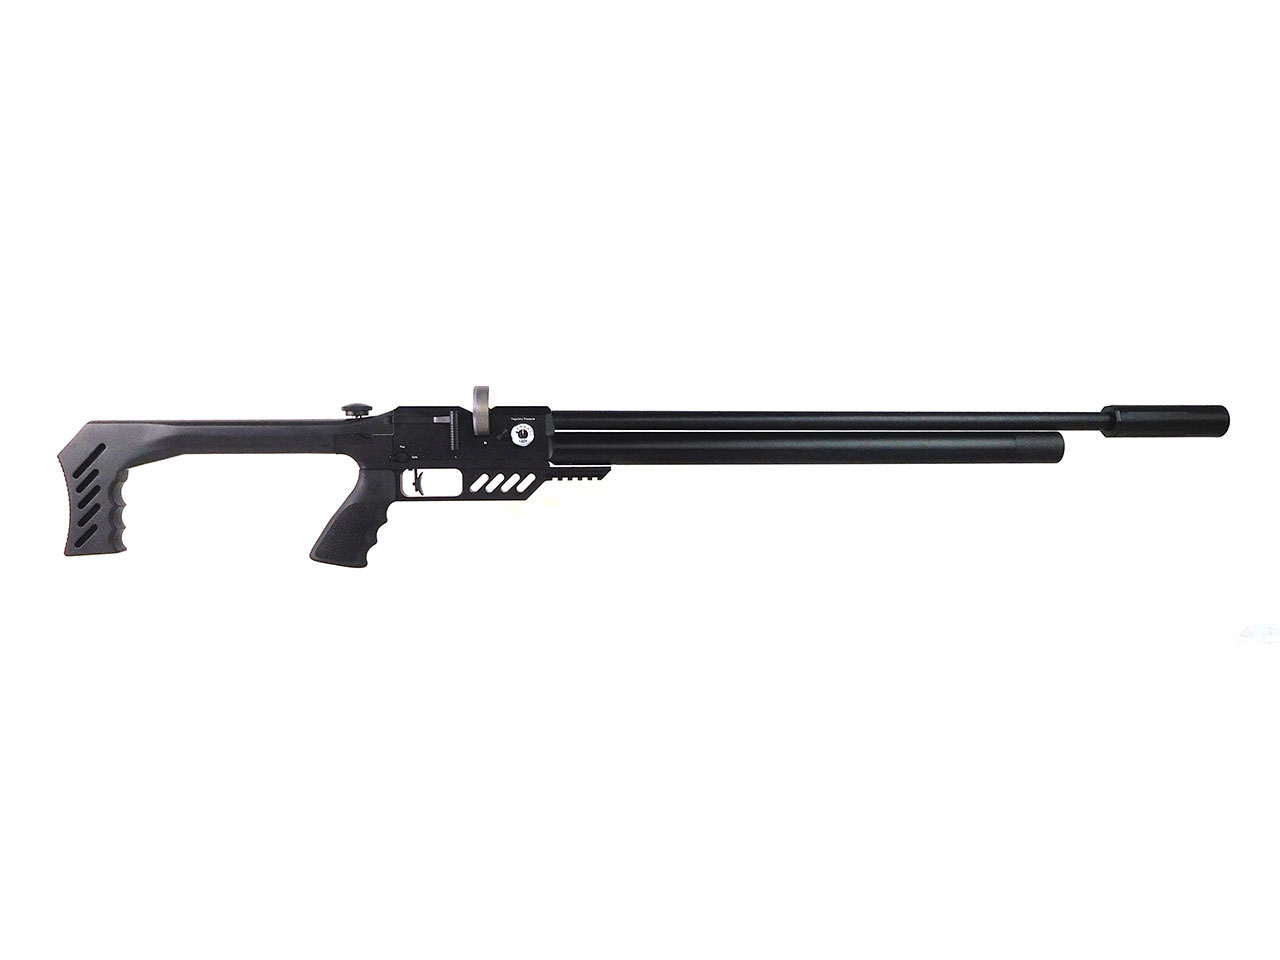 FX Dream-Lite PCP Air Rifle with DonnyFL Moderator